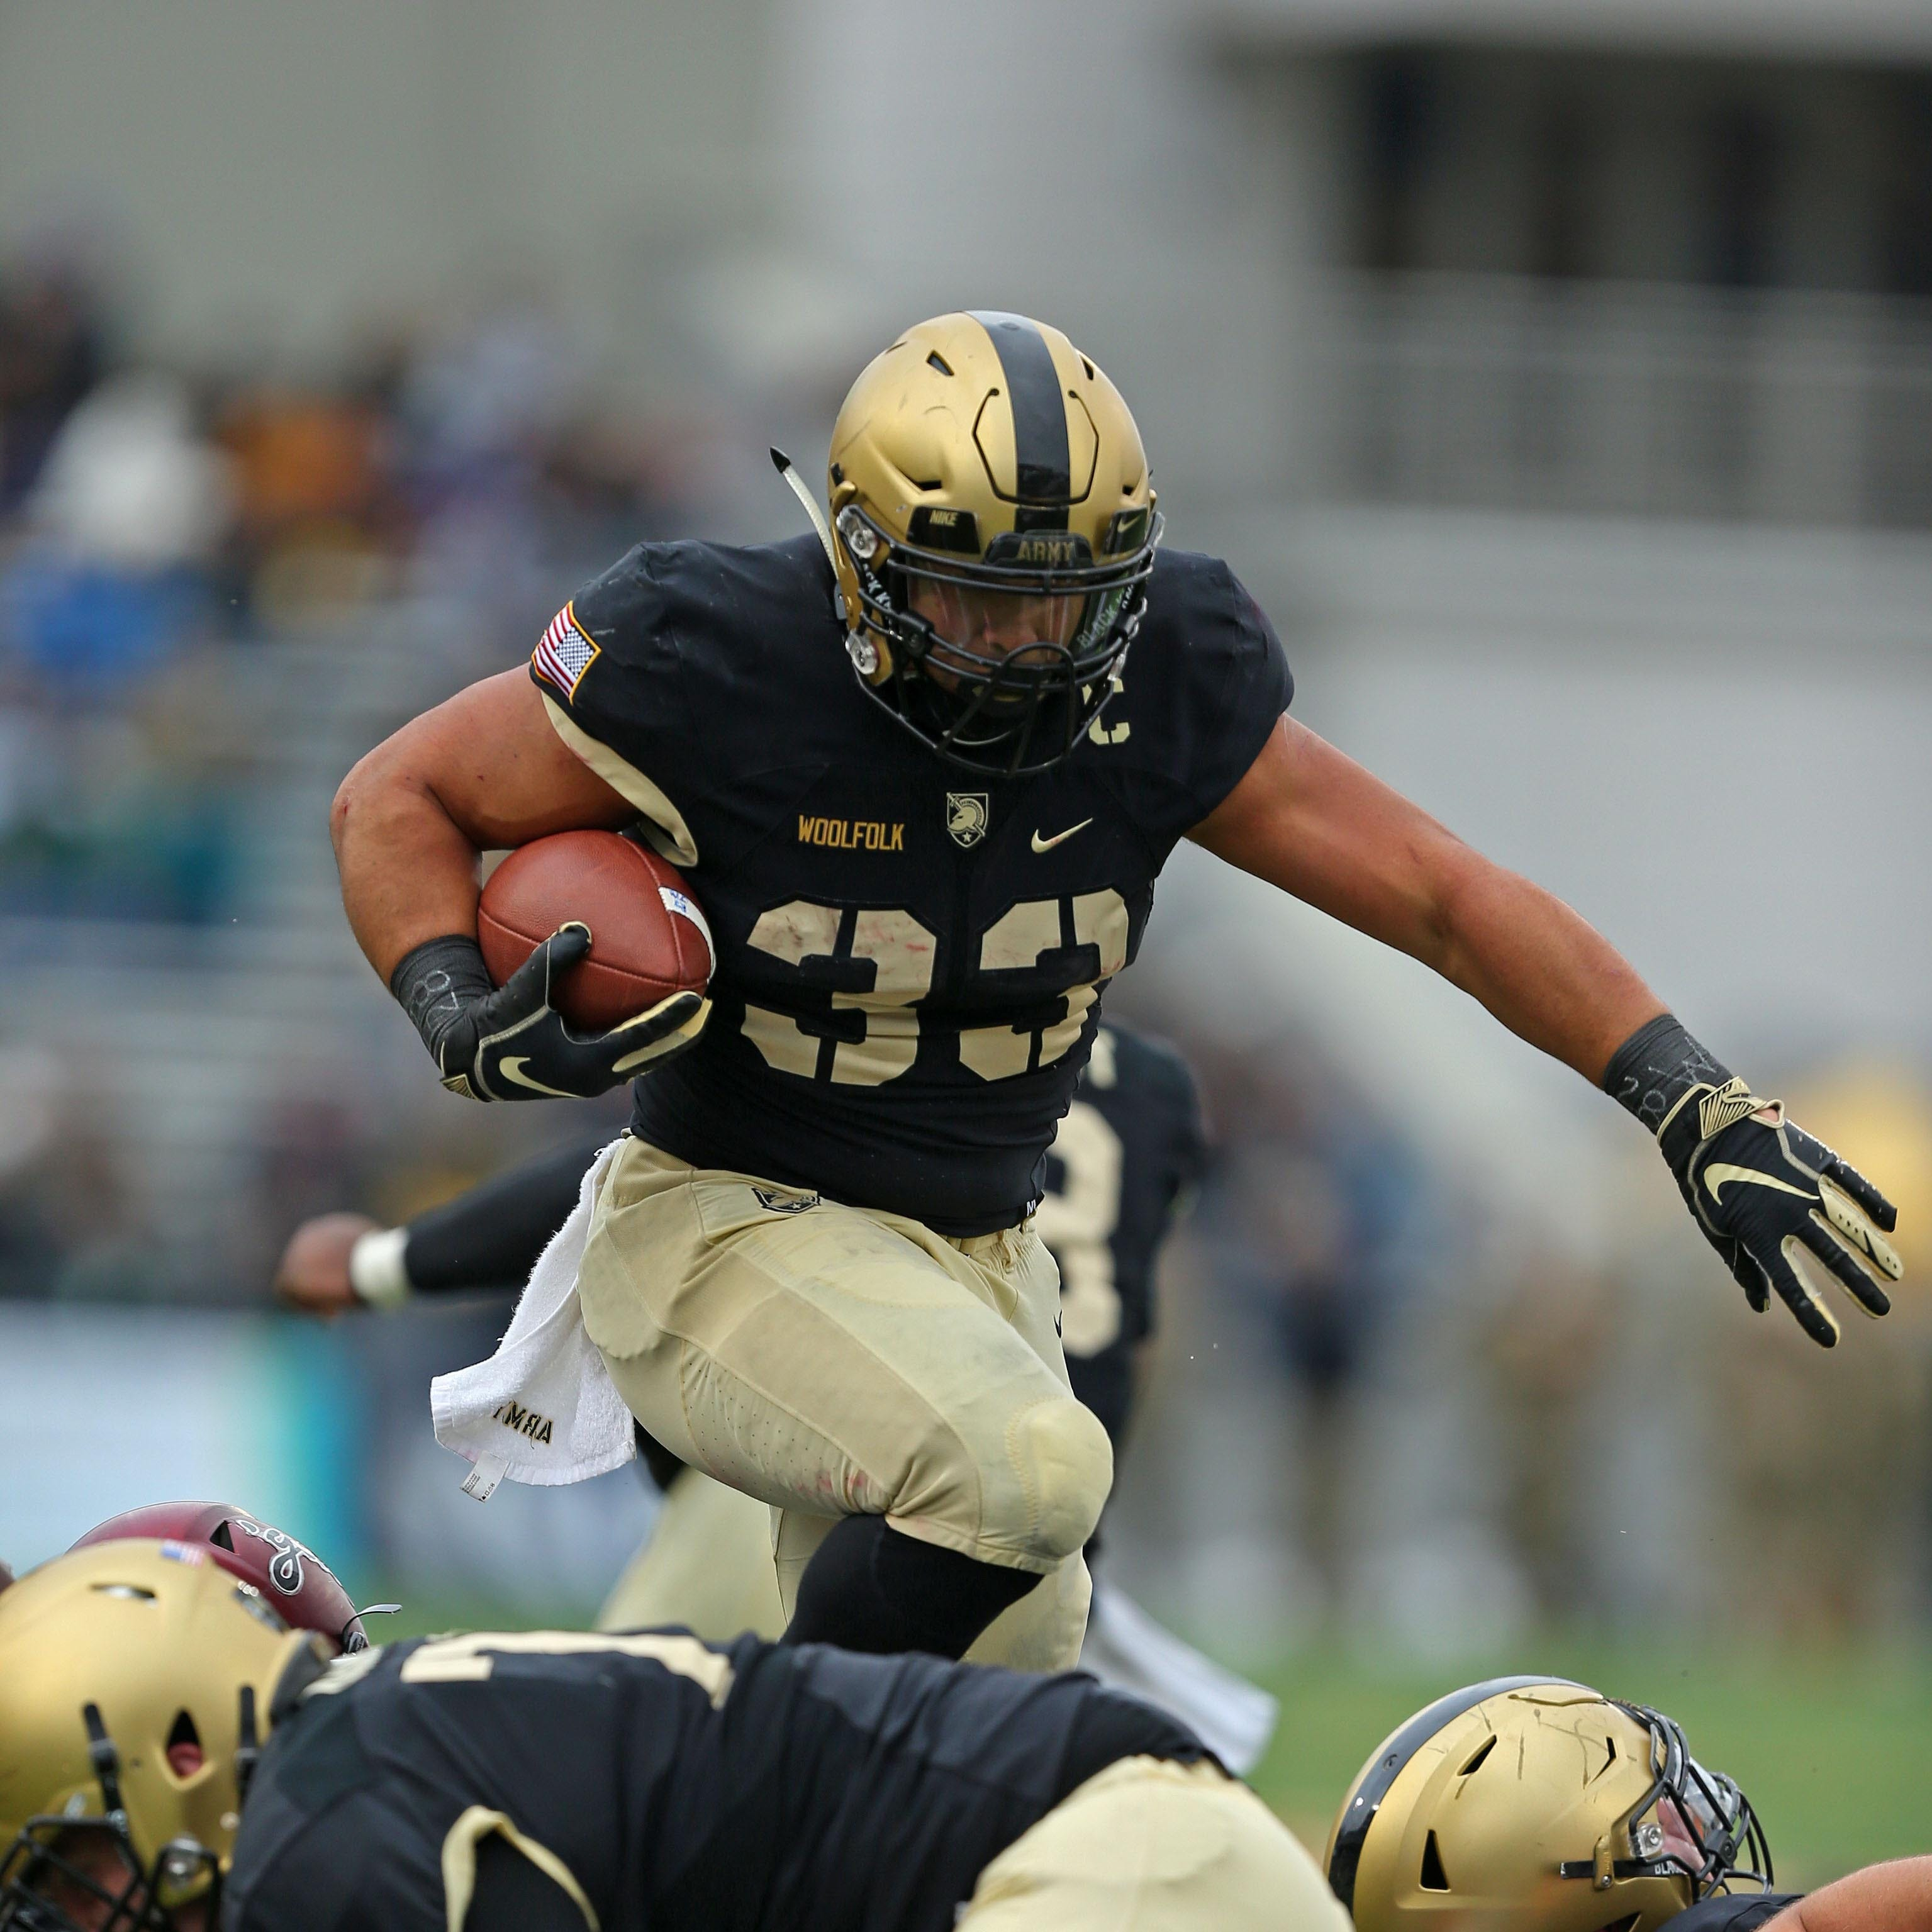 Maine-Endwell's Darnell Woolfolk scores 3 times in Army victory